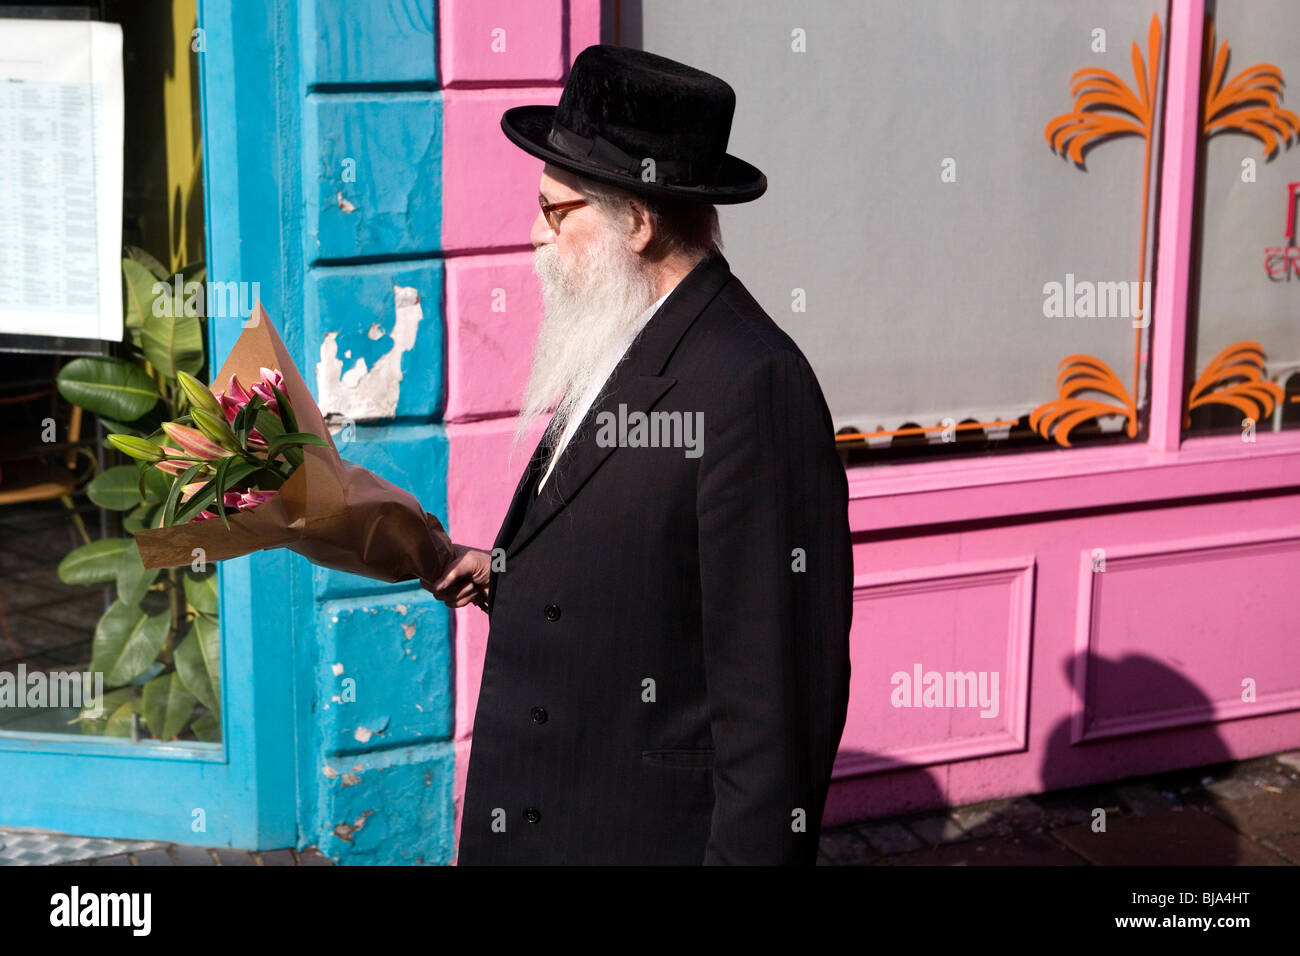 788e60ad senior orthodox jewish man with black hat and coat, carrying pink lilies  flowers past colourful pink and blue restaurant front